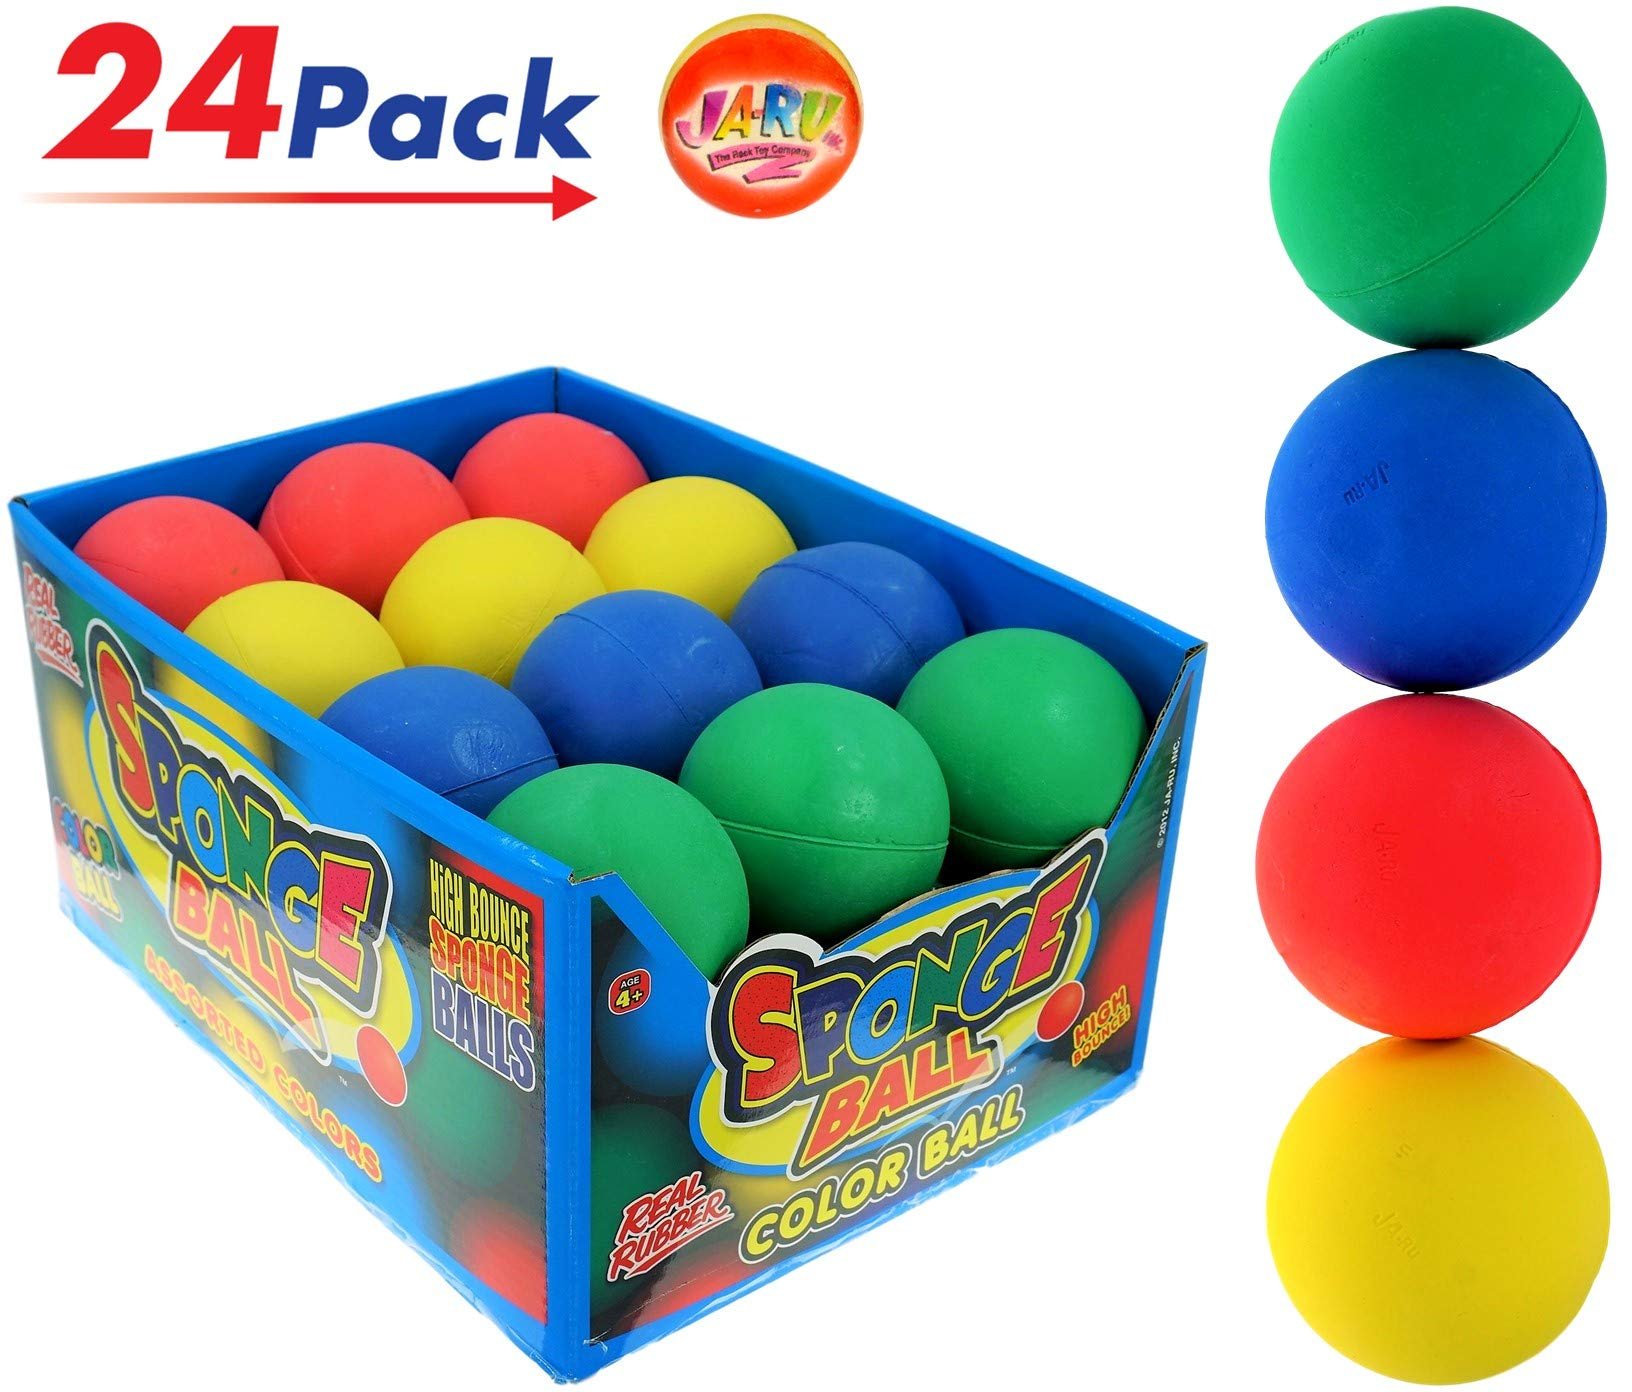 Rubber Bouncy Ball Colors Style (Pack of 24) 2.5'' Hi Bounce Same Like Pinky Balls for Play or Massage Therapy. Plus 1 Small JA-RU Ball. # 978-24p by JaRu